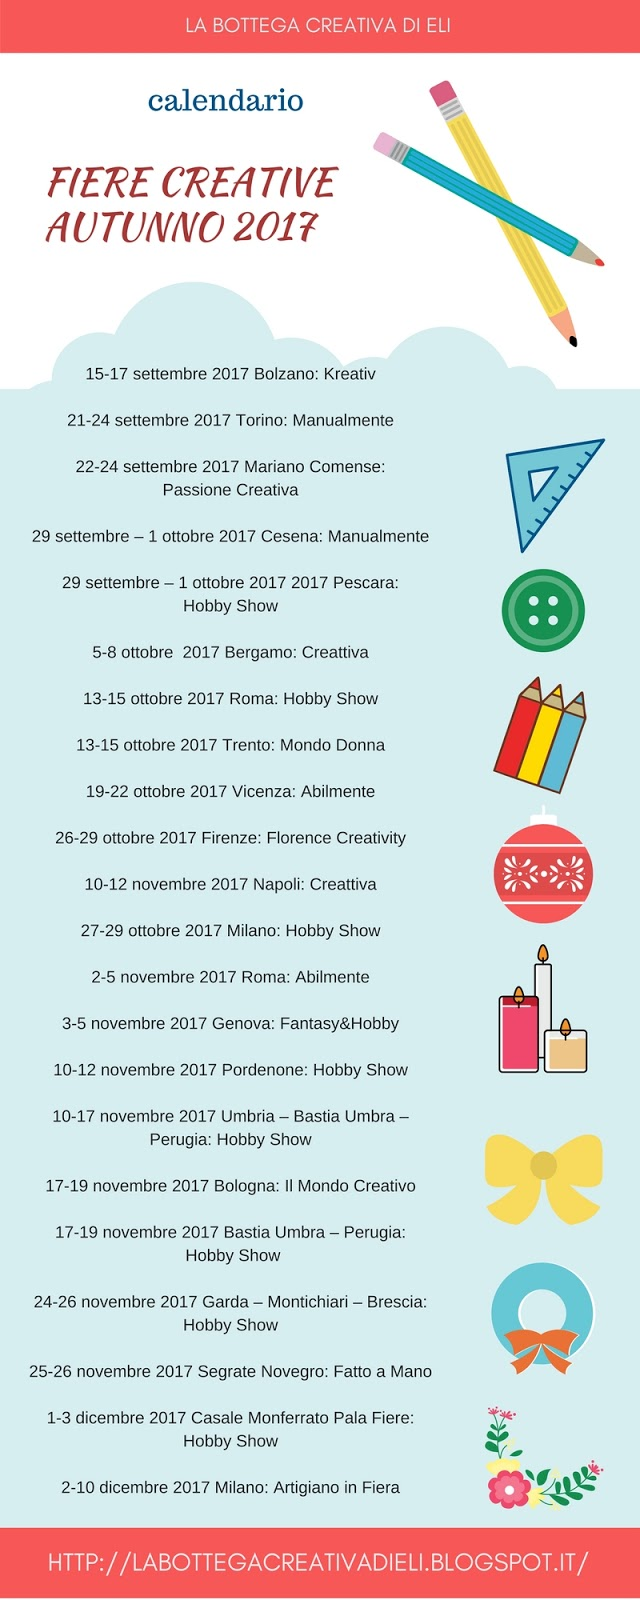 infografica-calendario-fiere-creative-autunno-2017